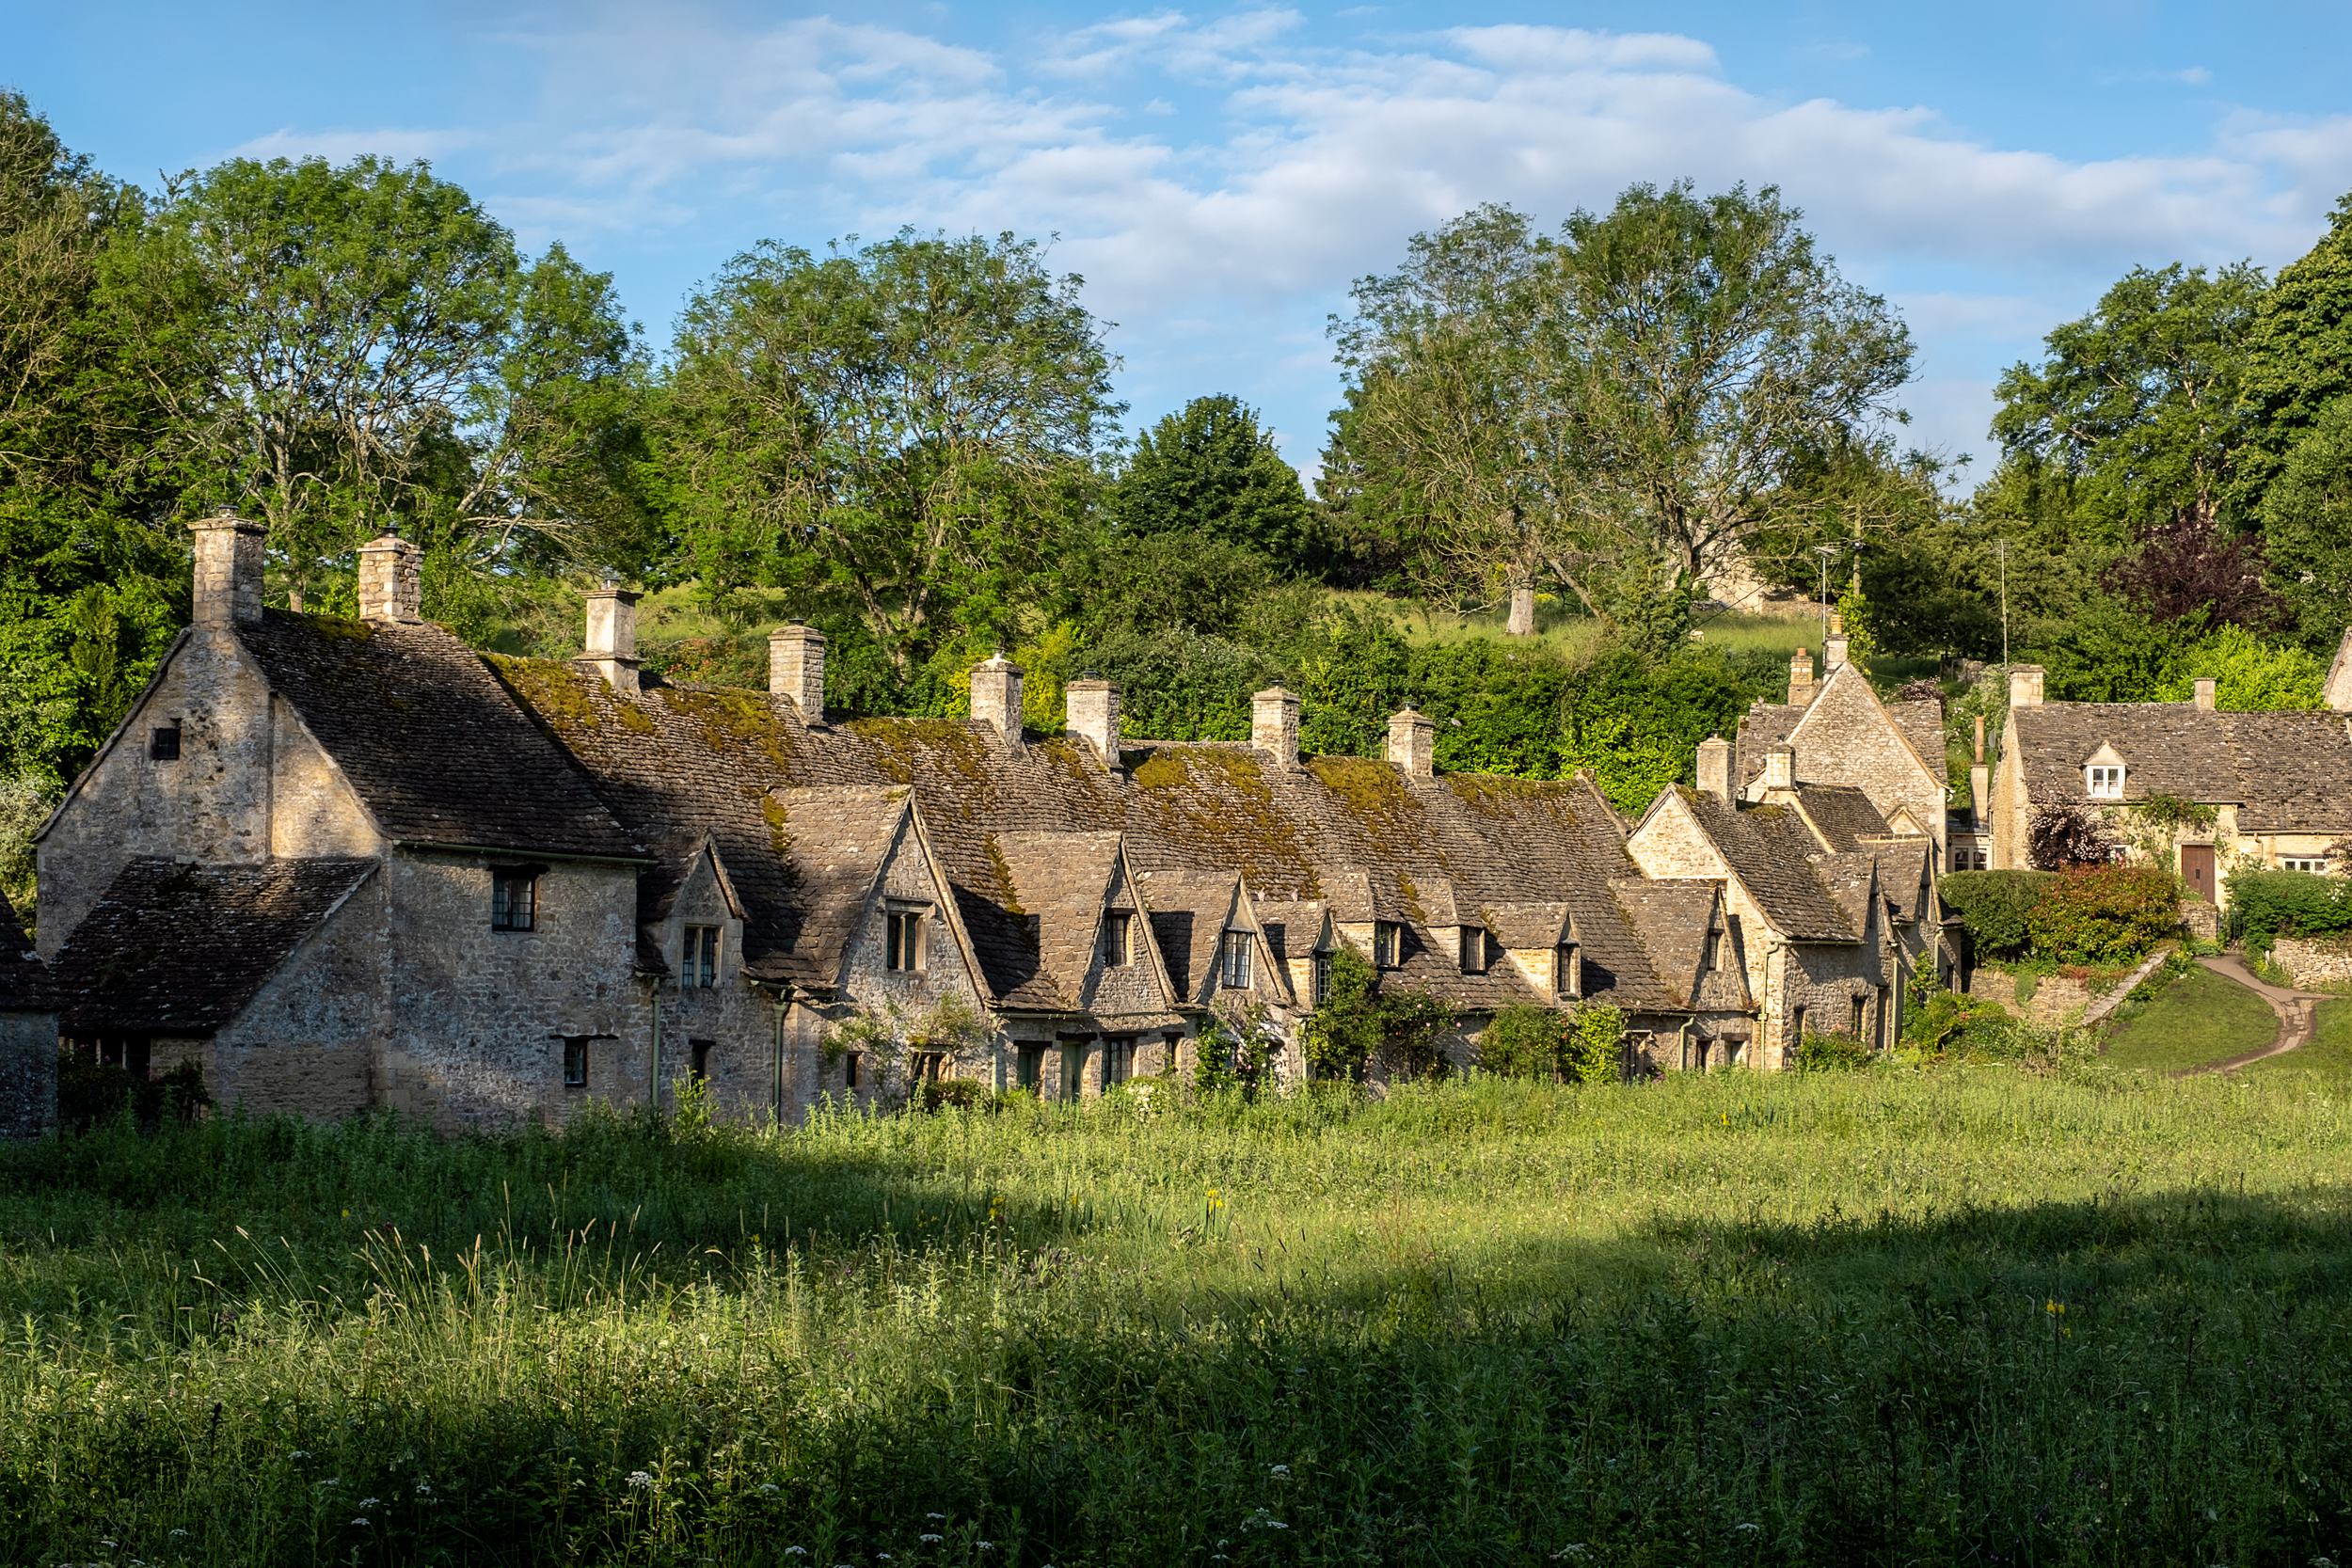 20190619_cotswolds-486-Edit.jpg